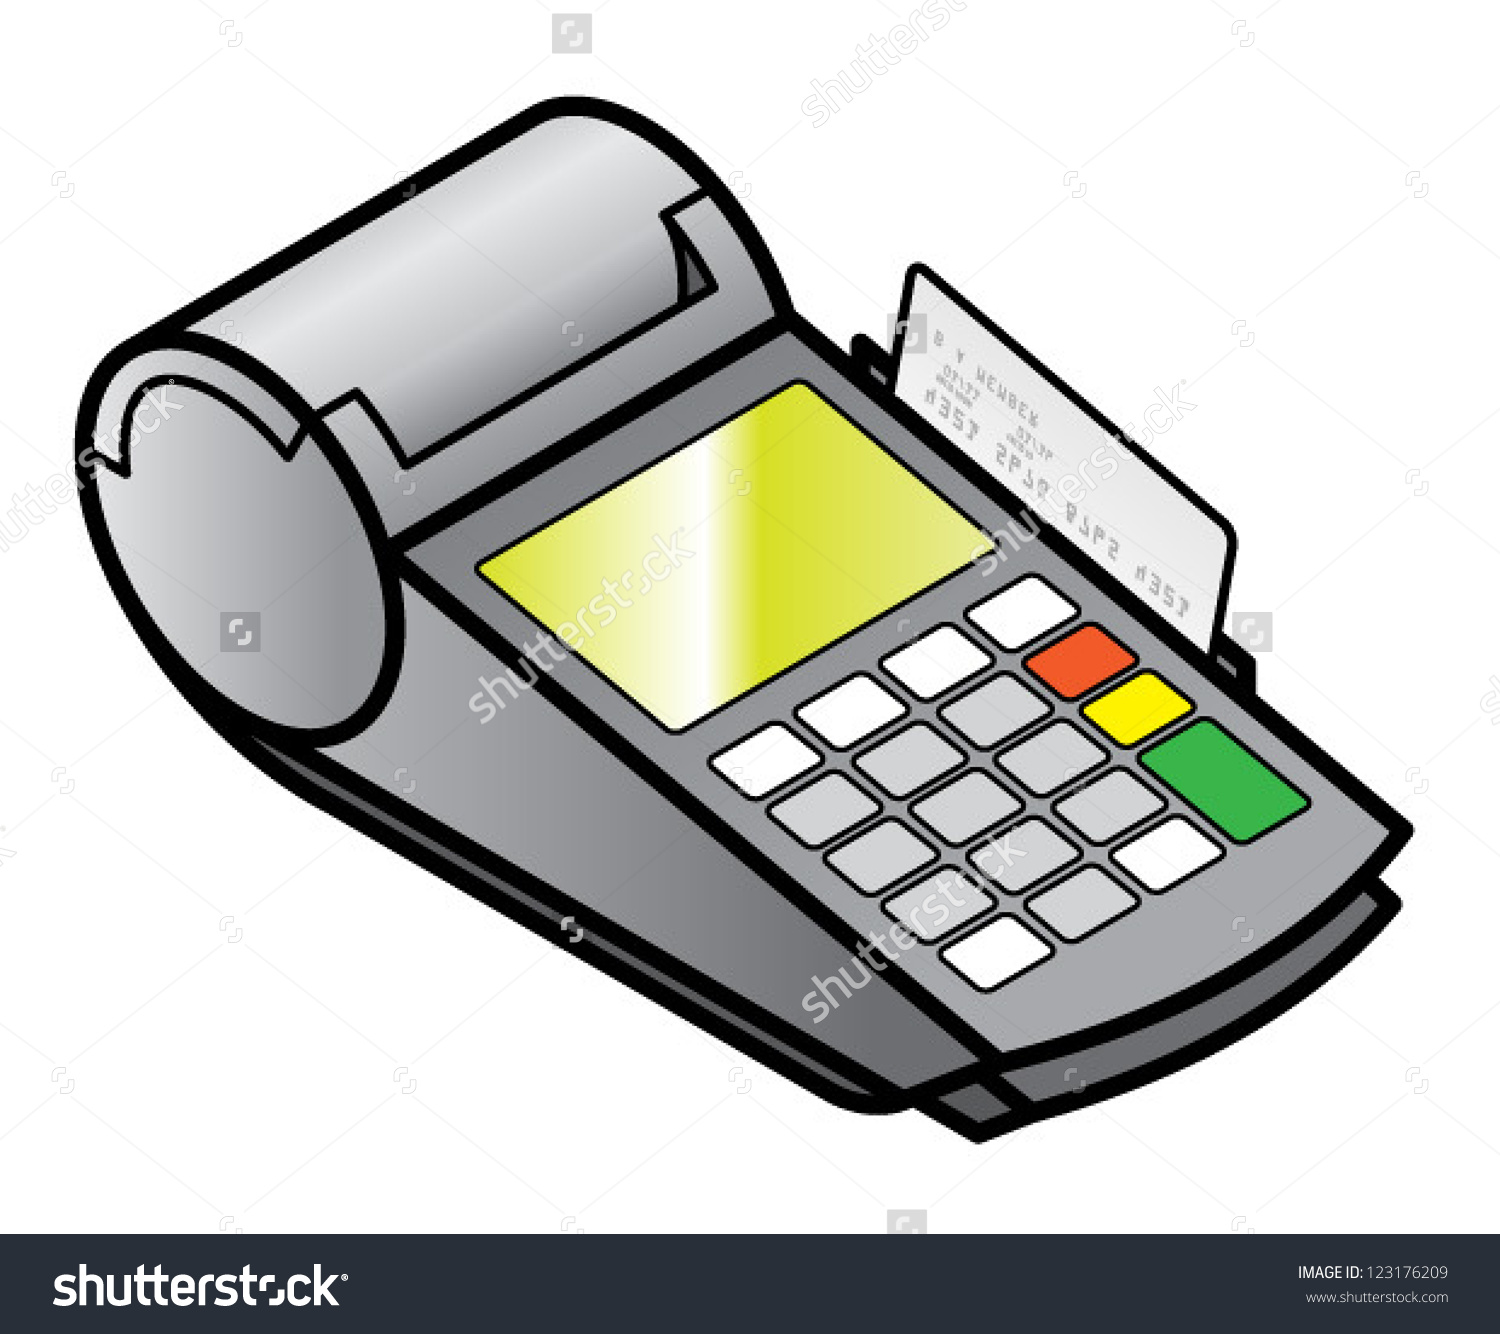 Mobile Handheld Point Sale Pin Pad Stock Vector 123176209.